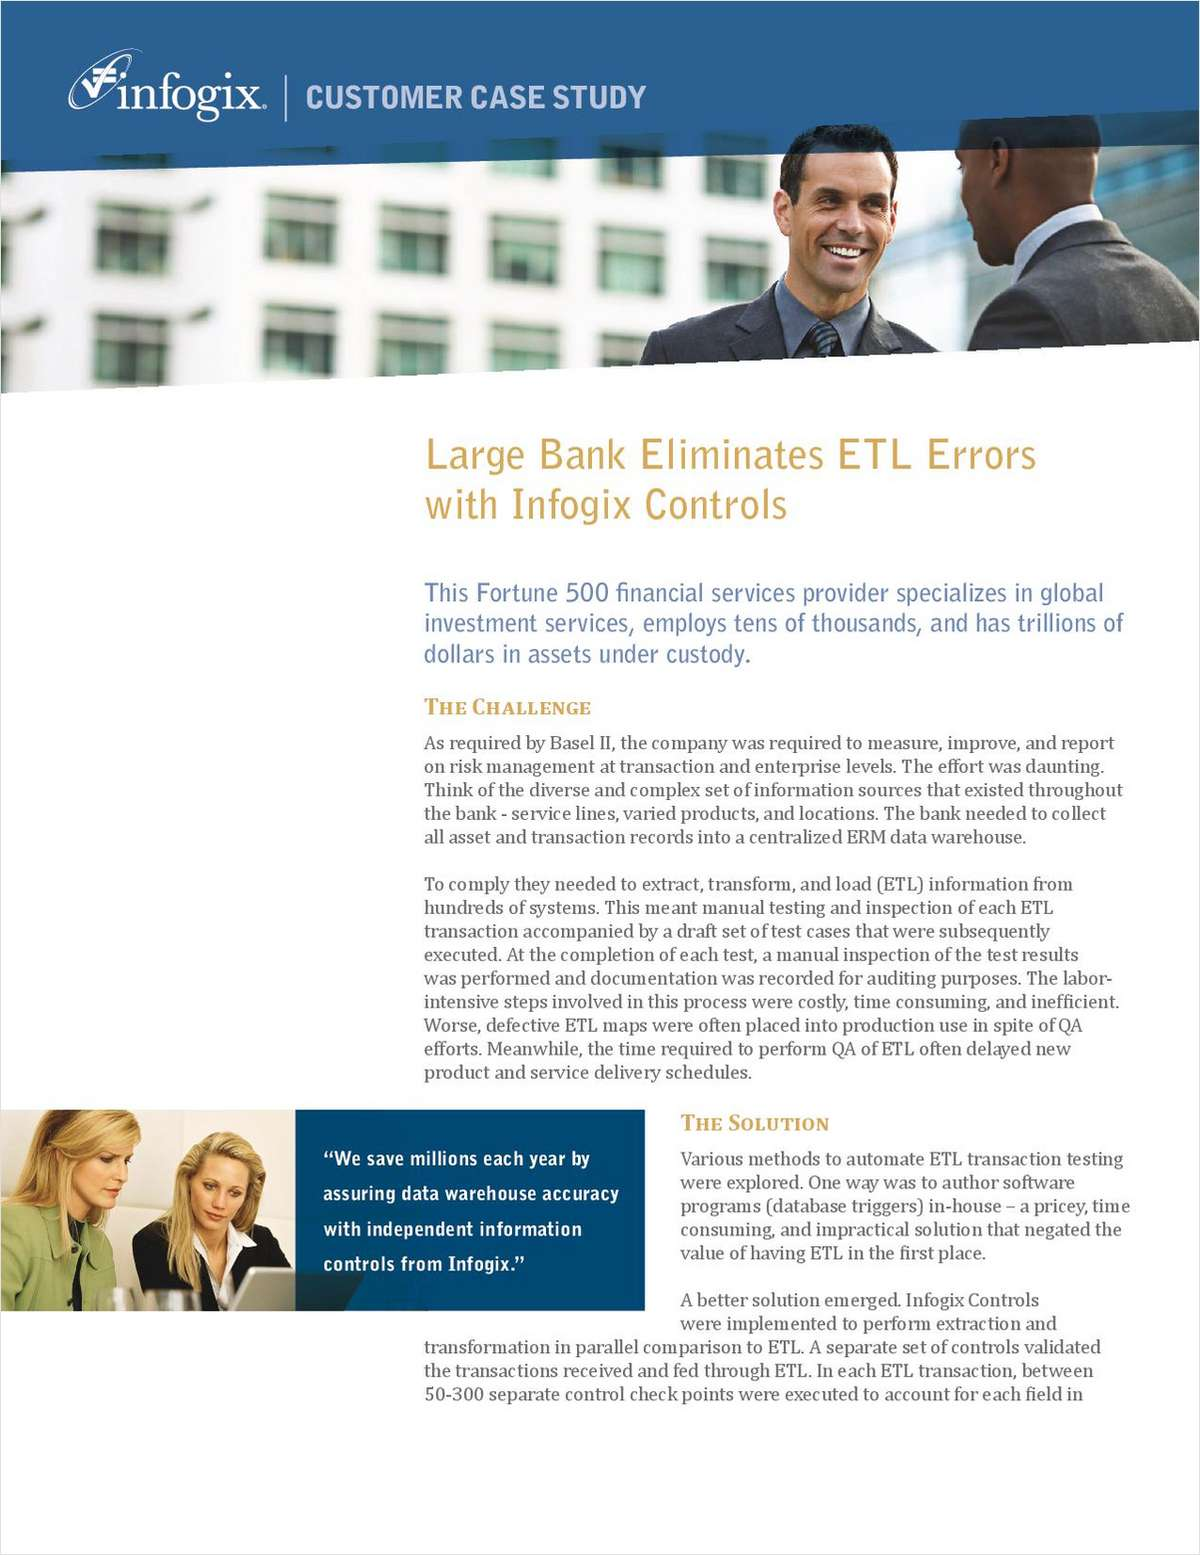 Large Bank Eliminates ETL Errors with Infogix Controls